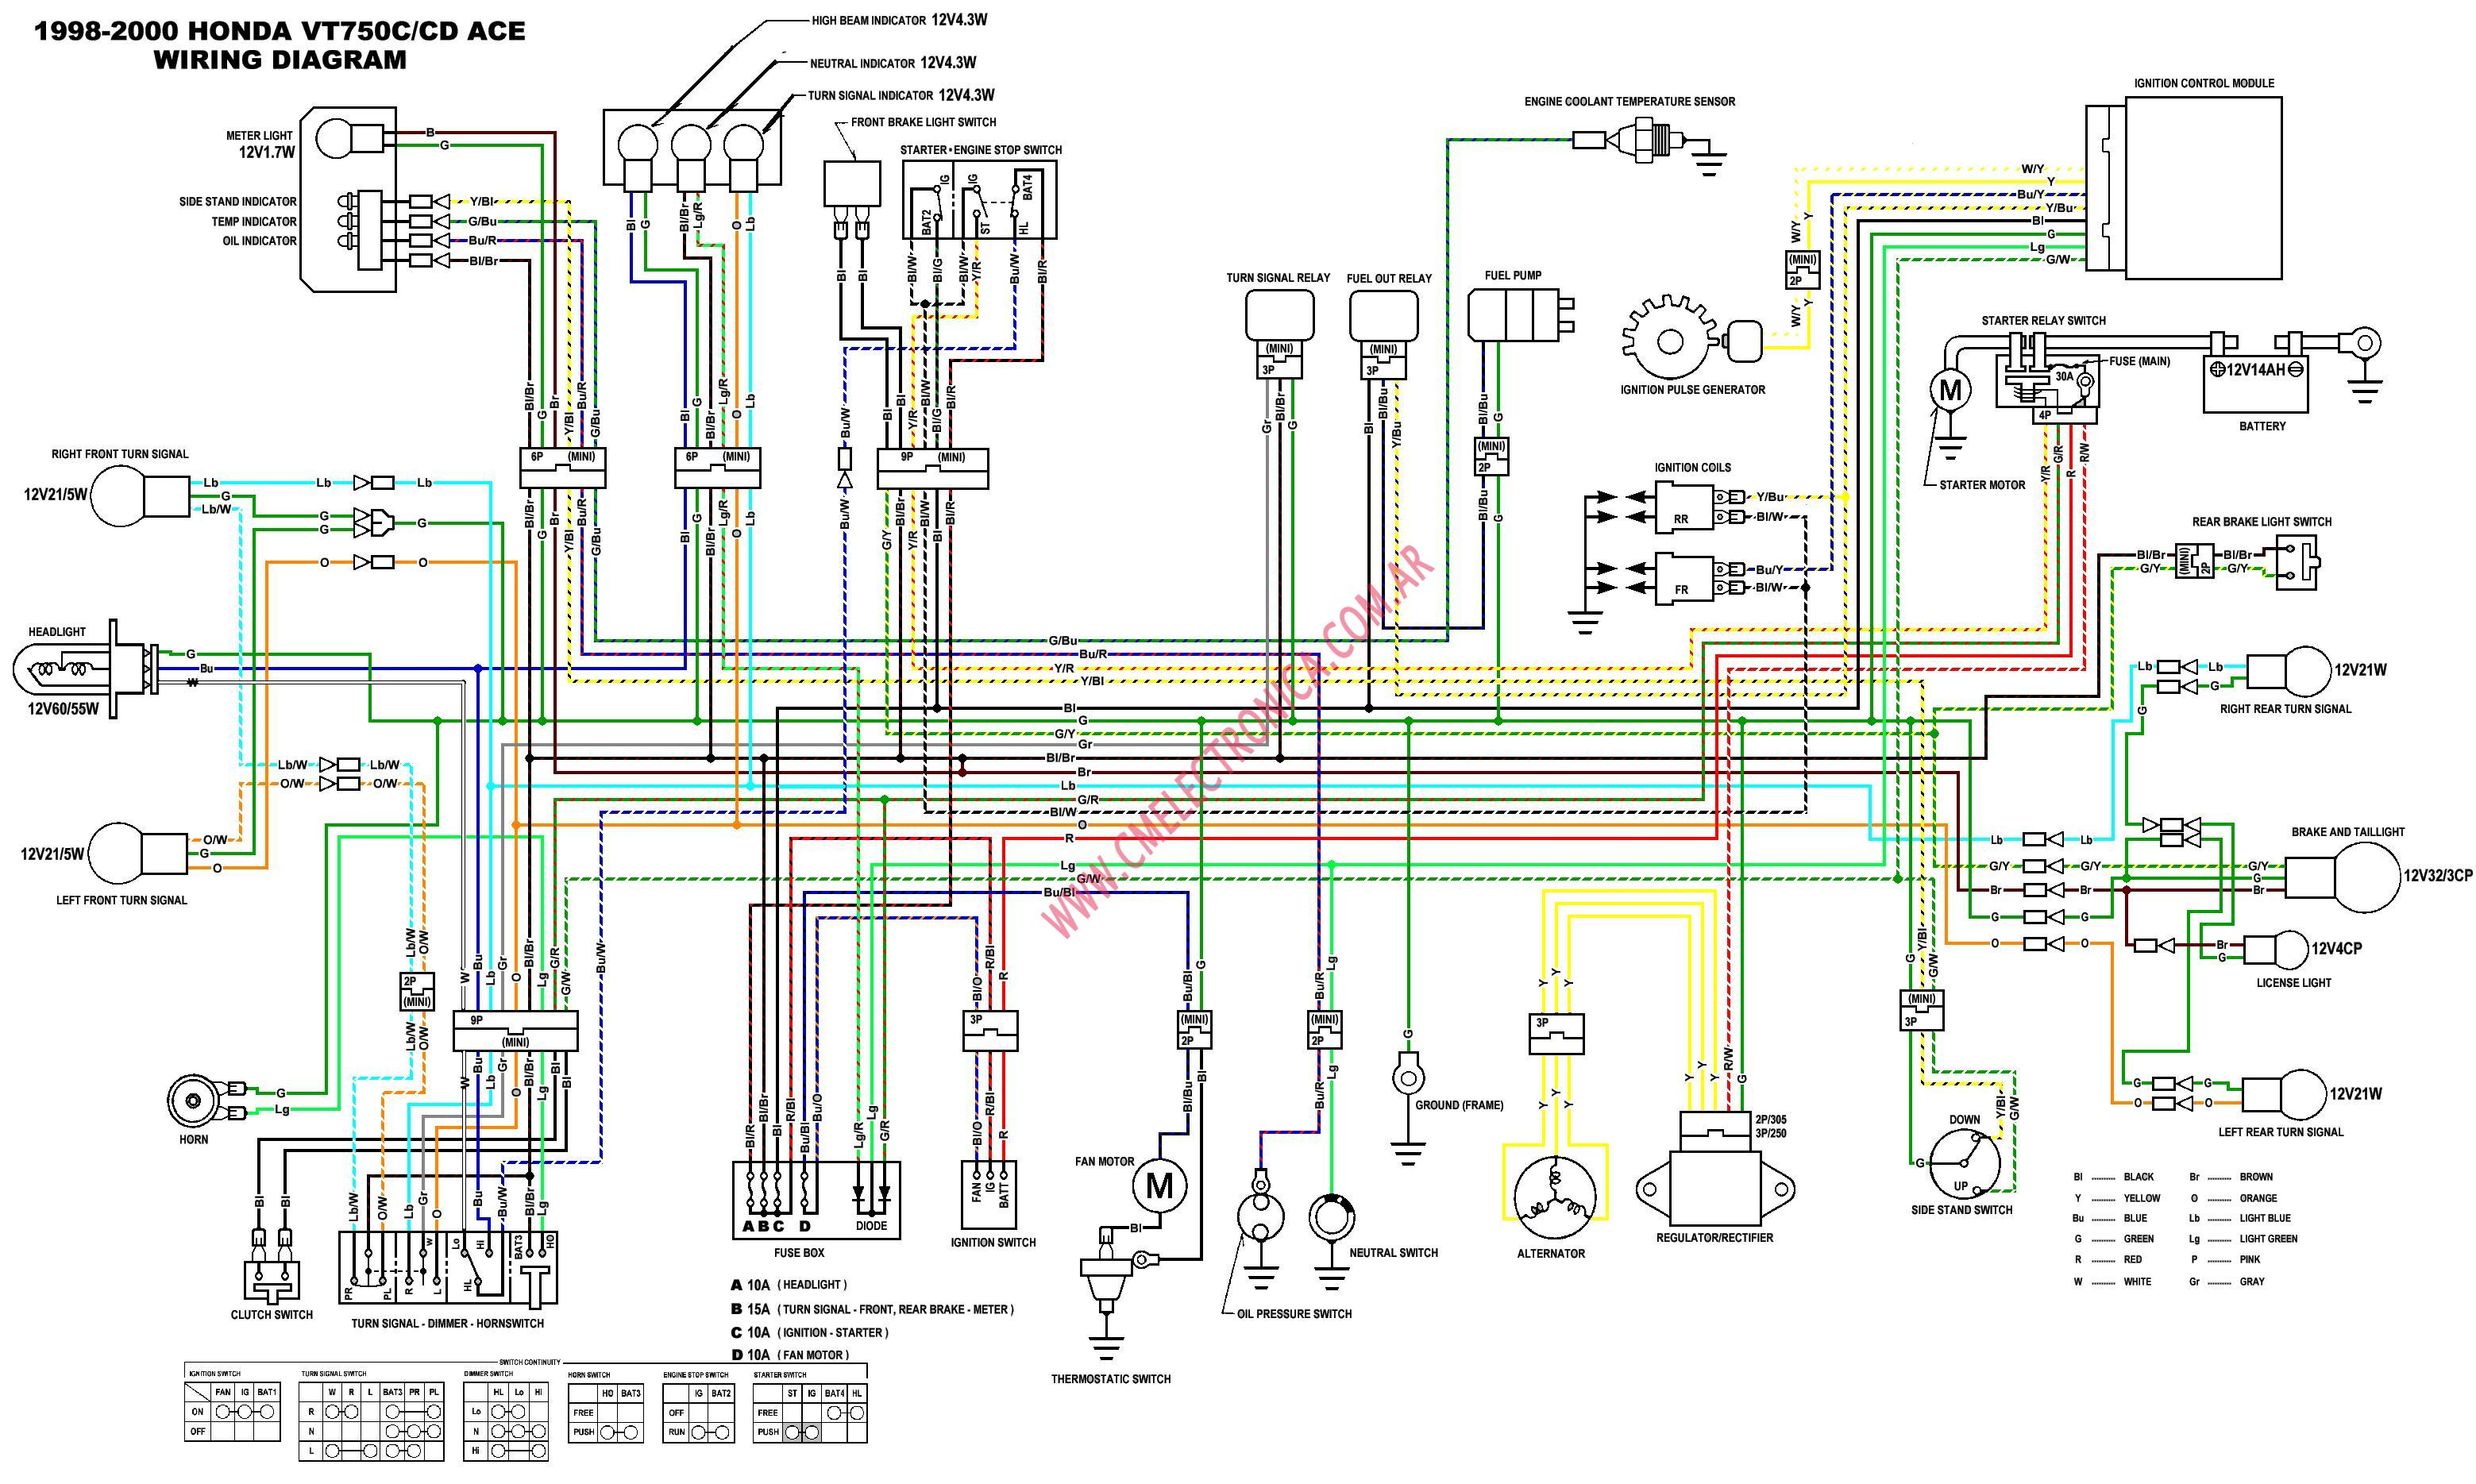 Vt750 Wiring Diagram Data Honda Gl500 Diagrama 88 00 Simple Cb200